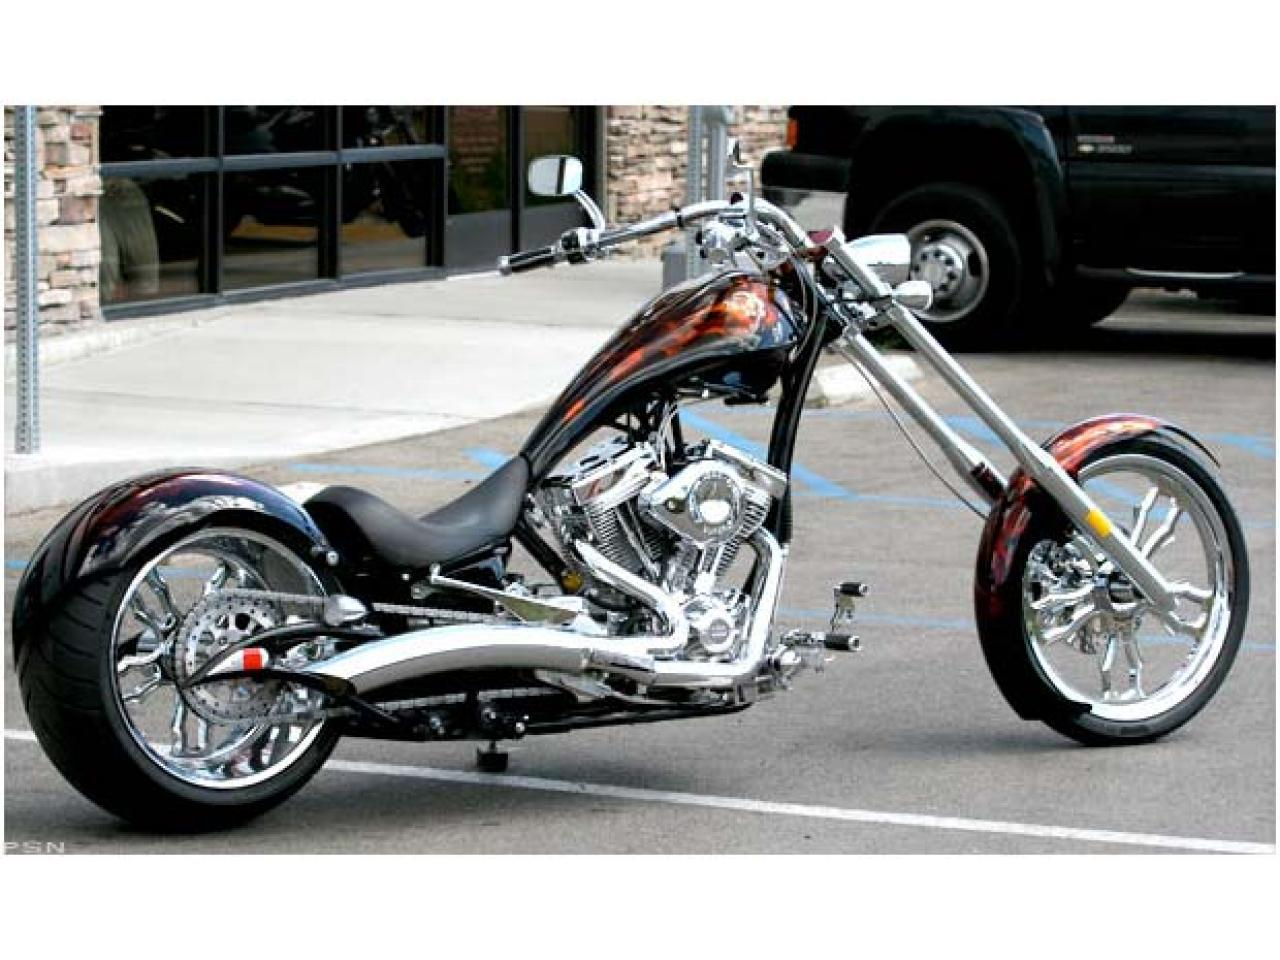 Big Bear Choppers Sled 100 EFI Evolution images #93358